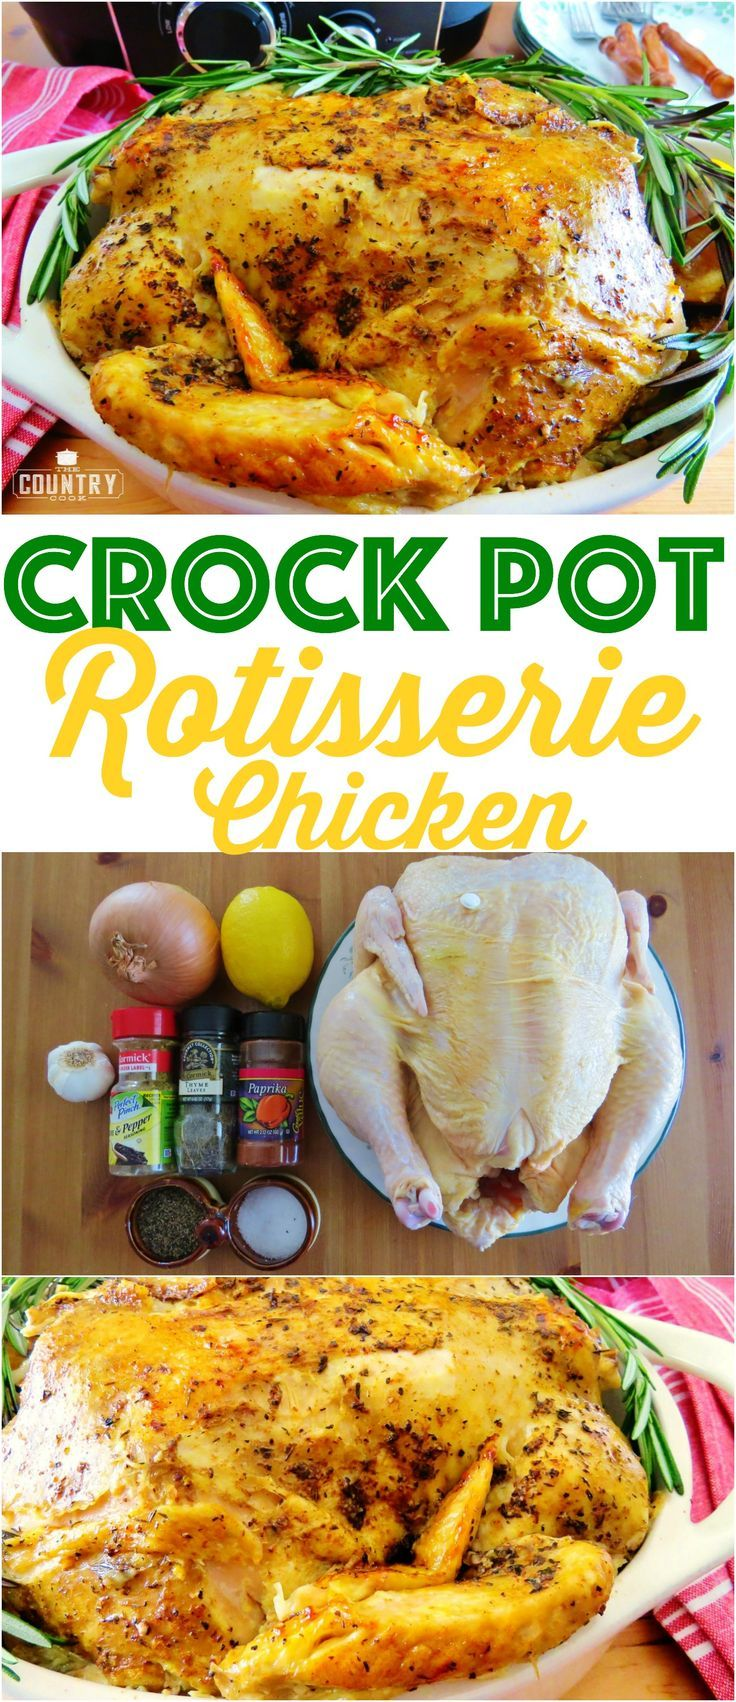 Crock Pot Whole Rotisserie Chicken recipe from The Country Cook